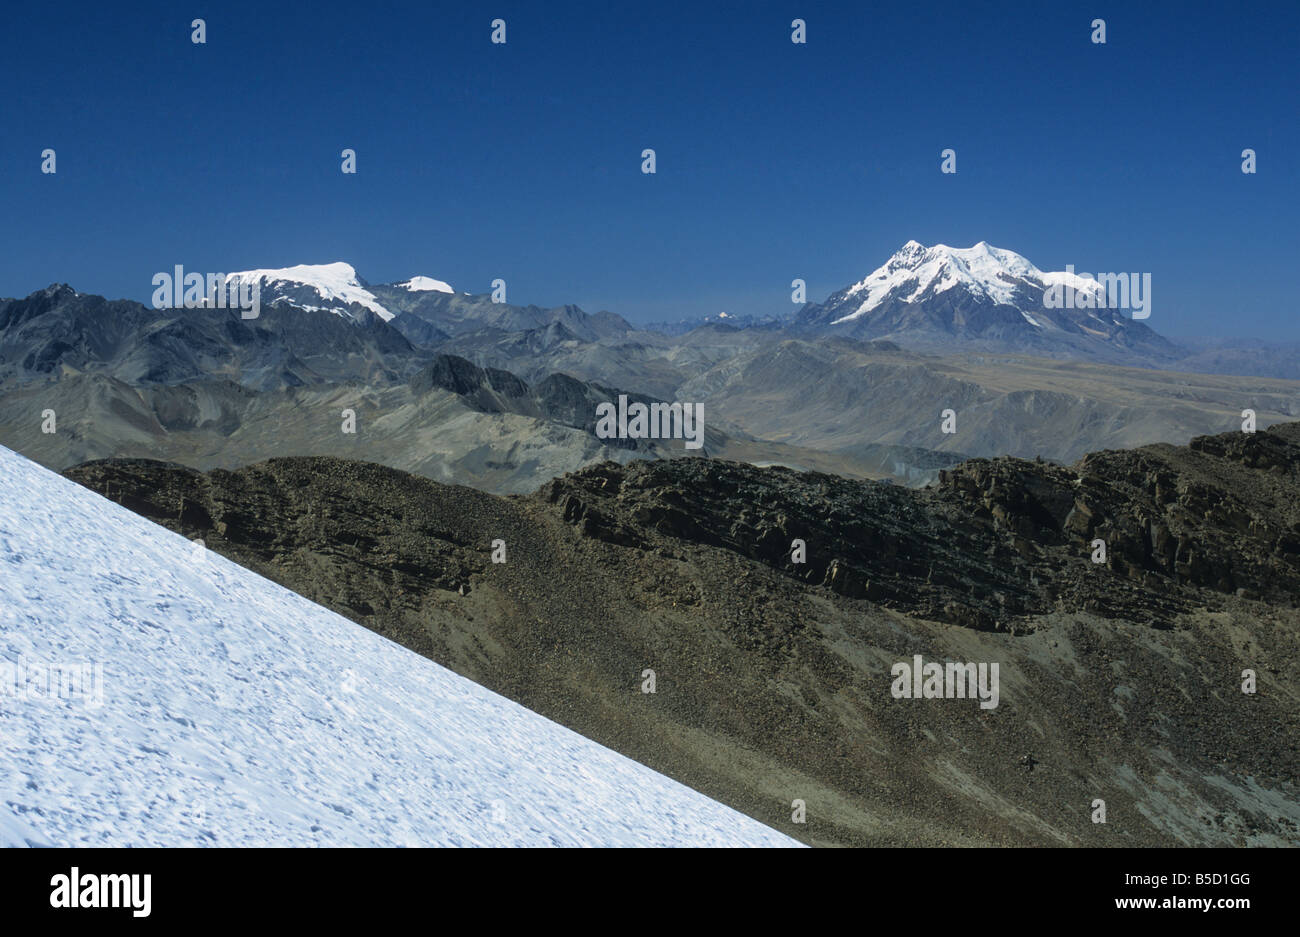 Mts Mururata (L) and Illimani (R) seen from Mt. Chacaltaya glacier in foreground, Cordillera Real, Bolivia Stock Photo